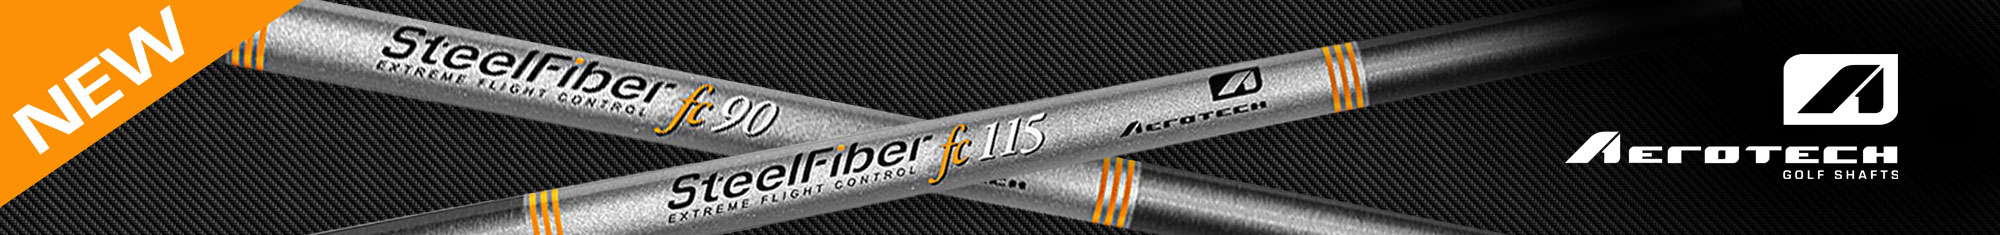 new-steelfiber